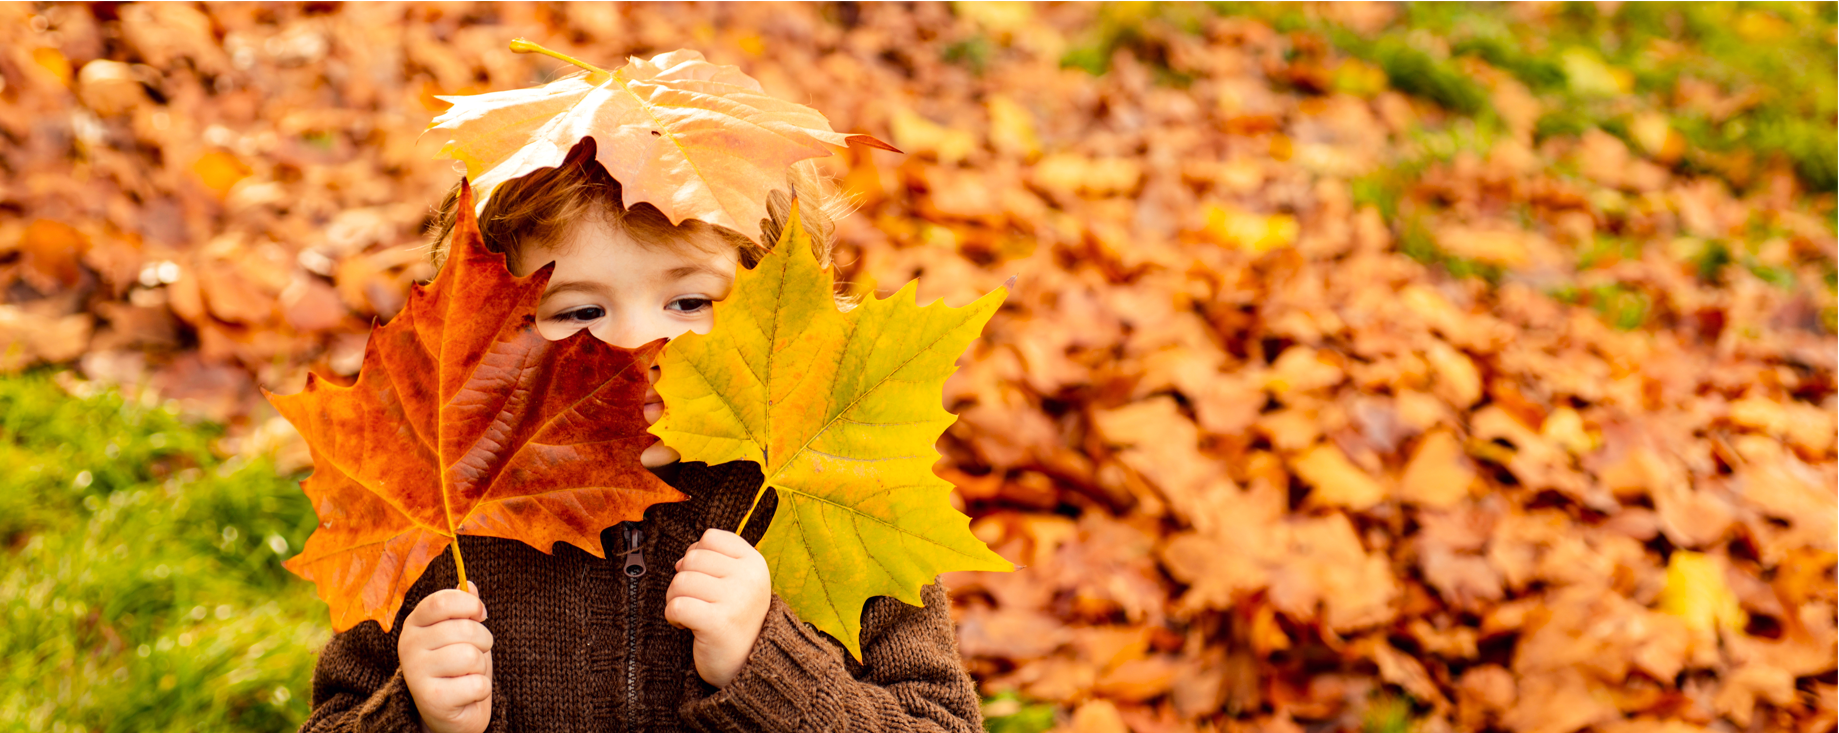 Autumn Leaves & Learning Opportunities 1